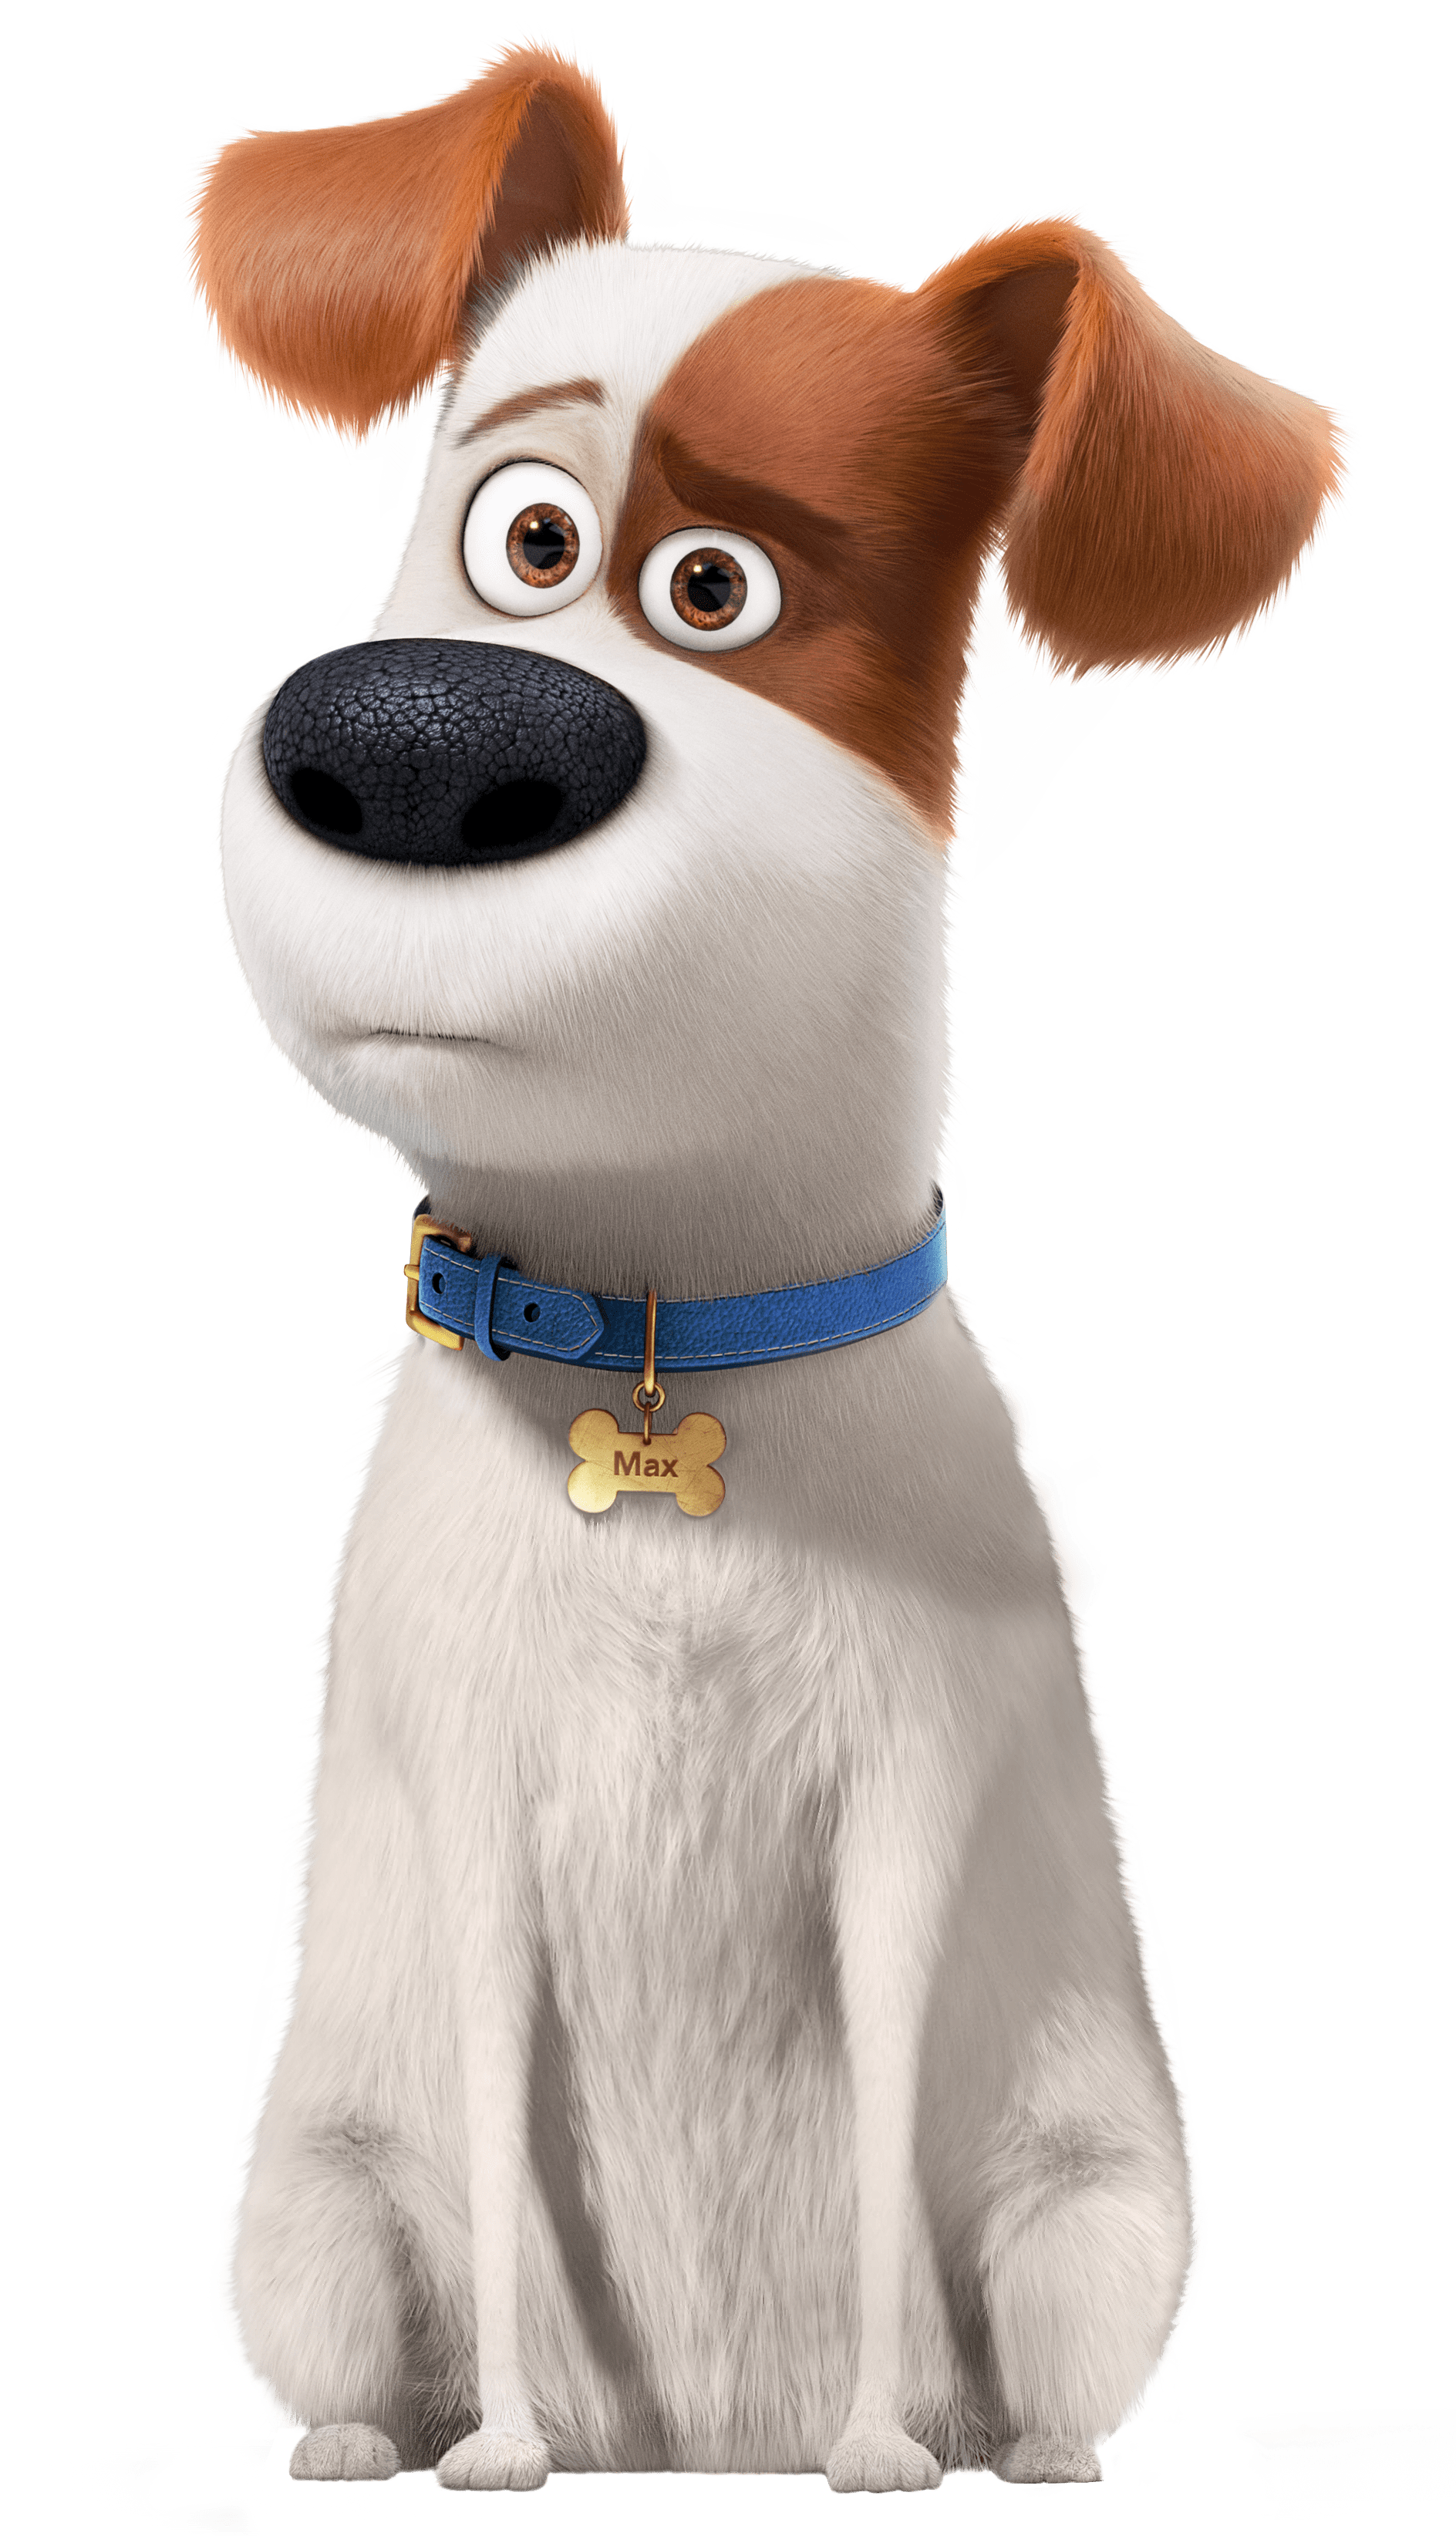 Clipart dogs worried. Max transparent png stickpng